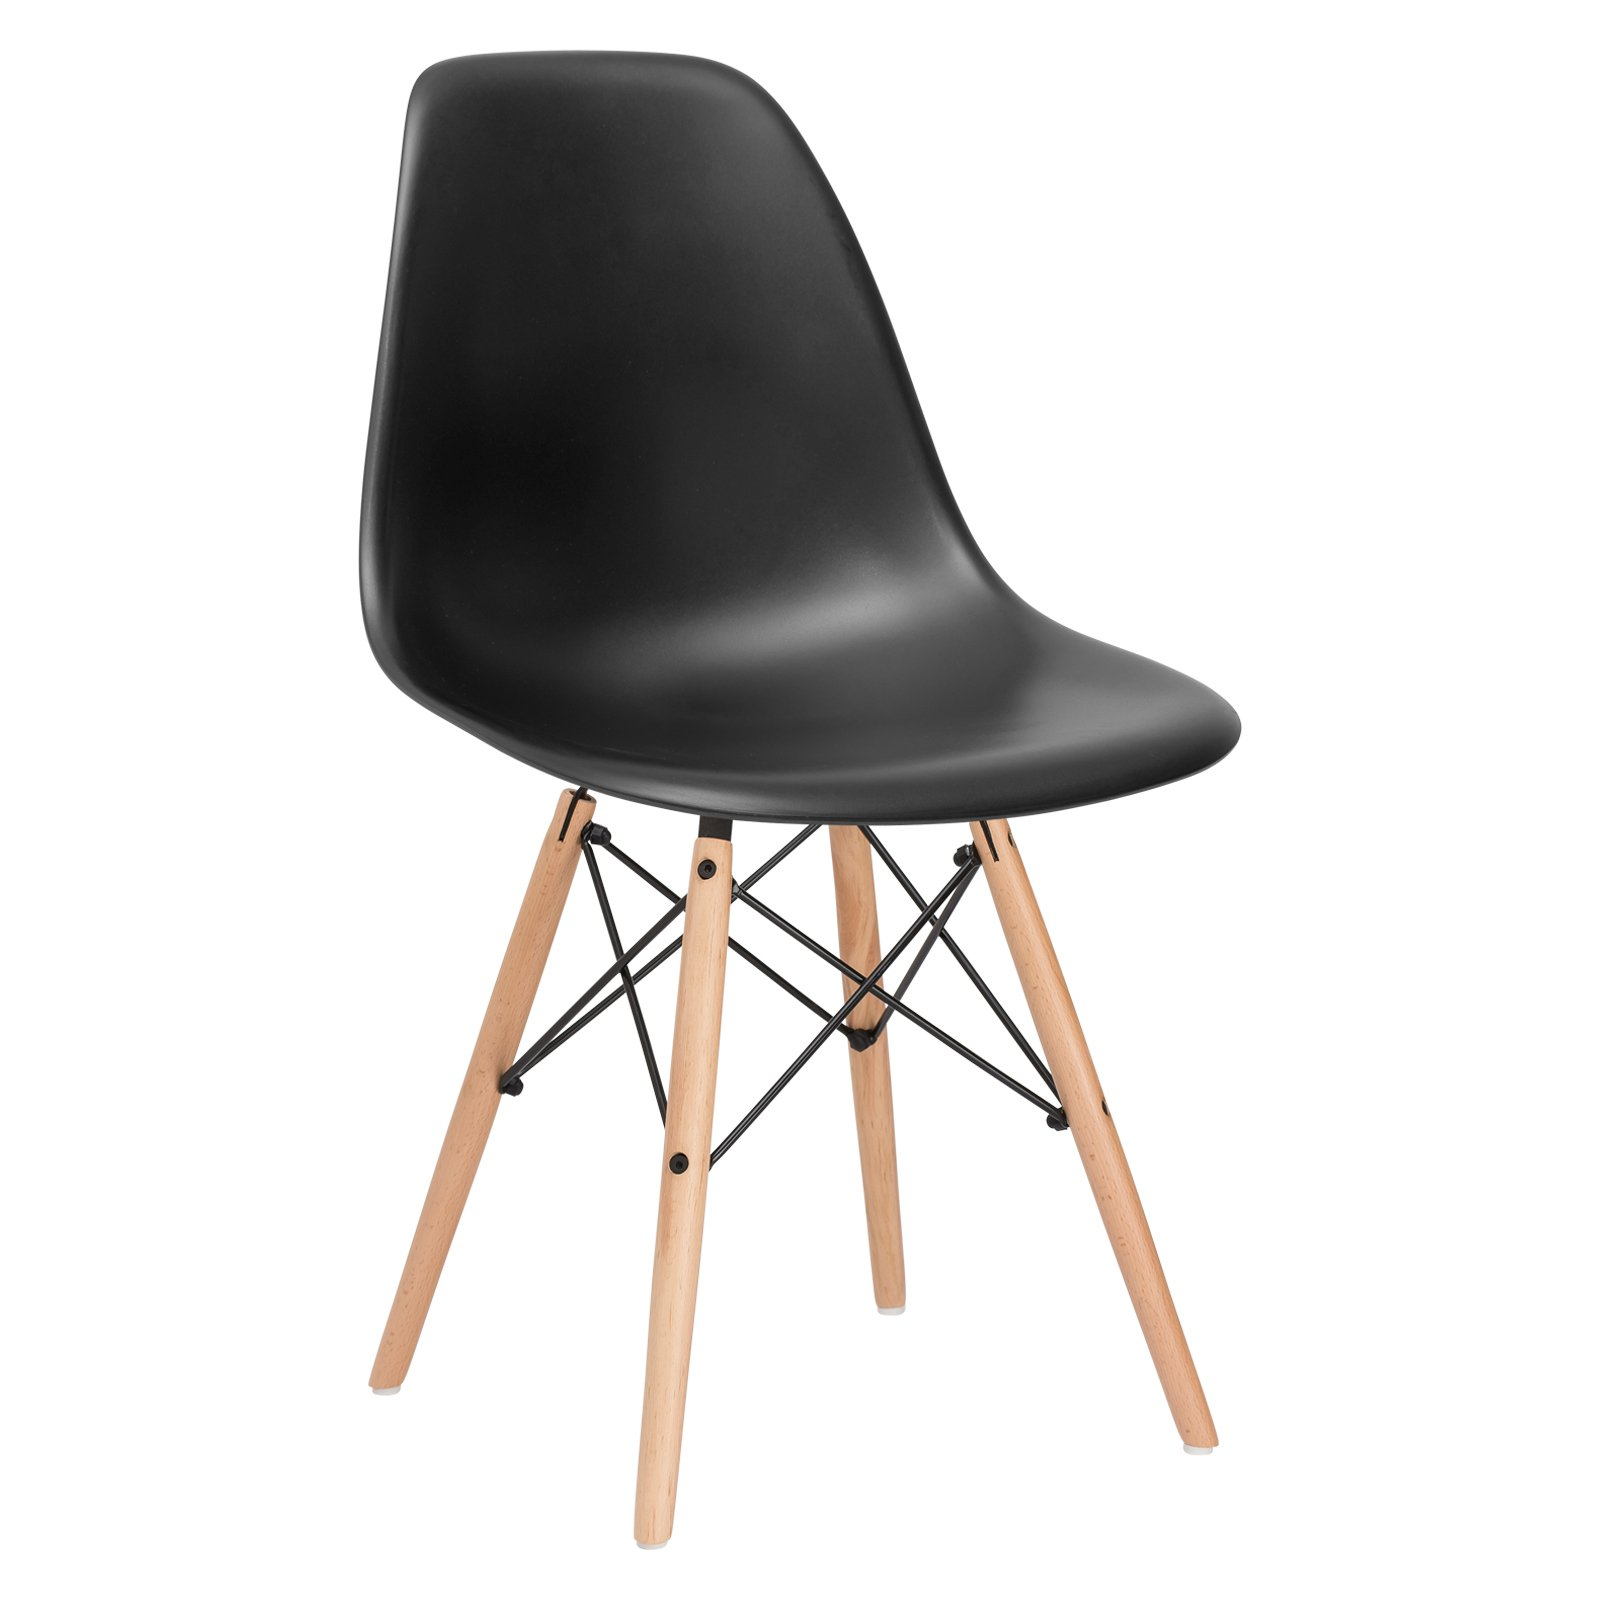 Poly and Bark Modern Mid-Century Side Chair with Natural Wood Legs for Kitchen, Living Room and Dining Room, Black by POLY & BARK